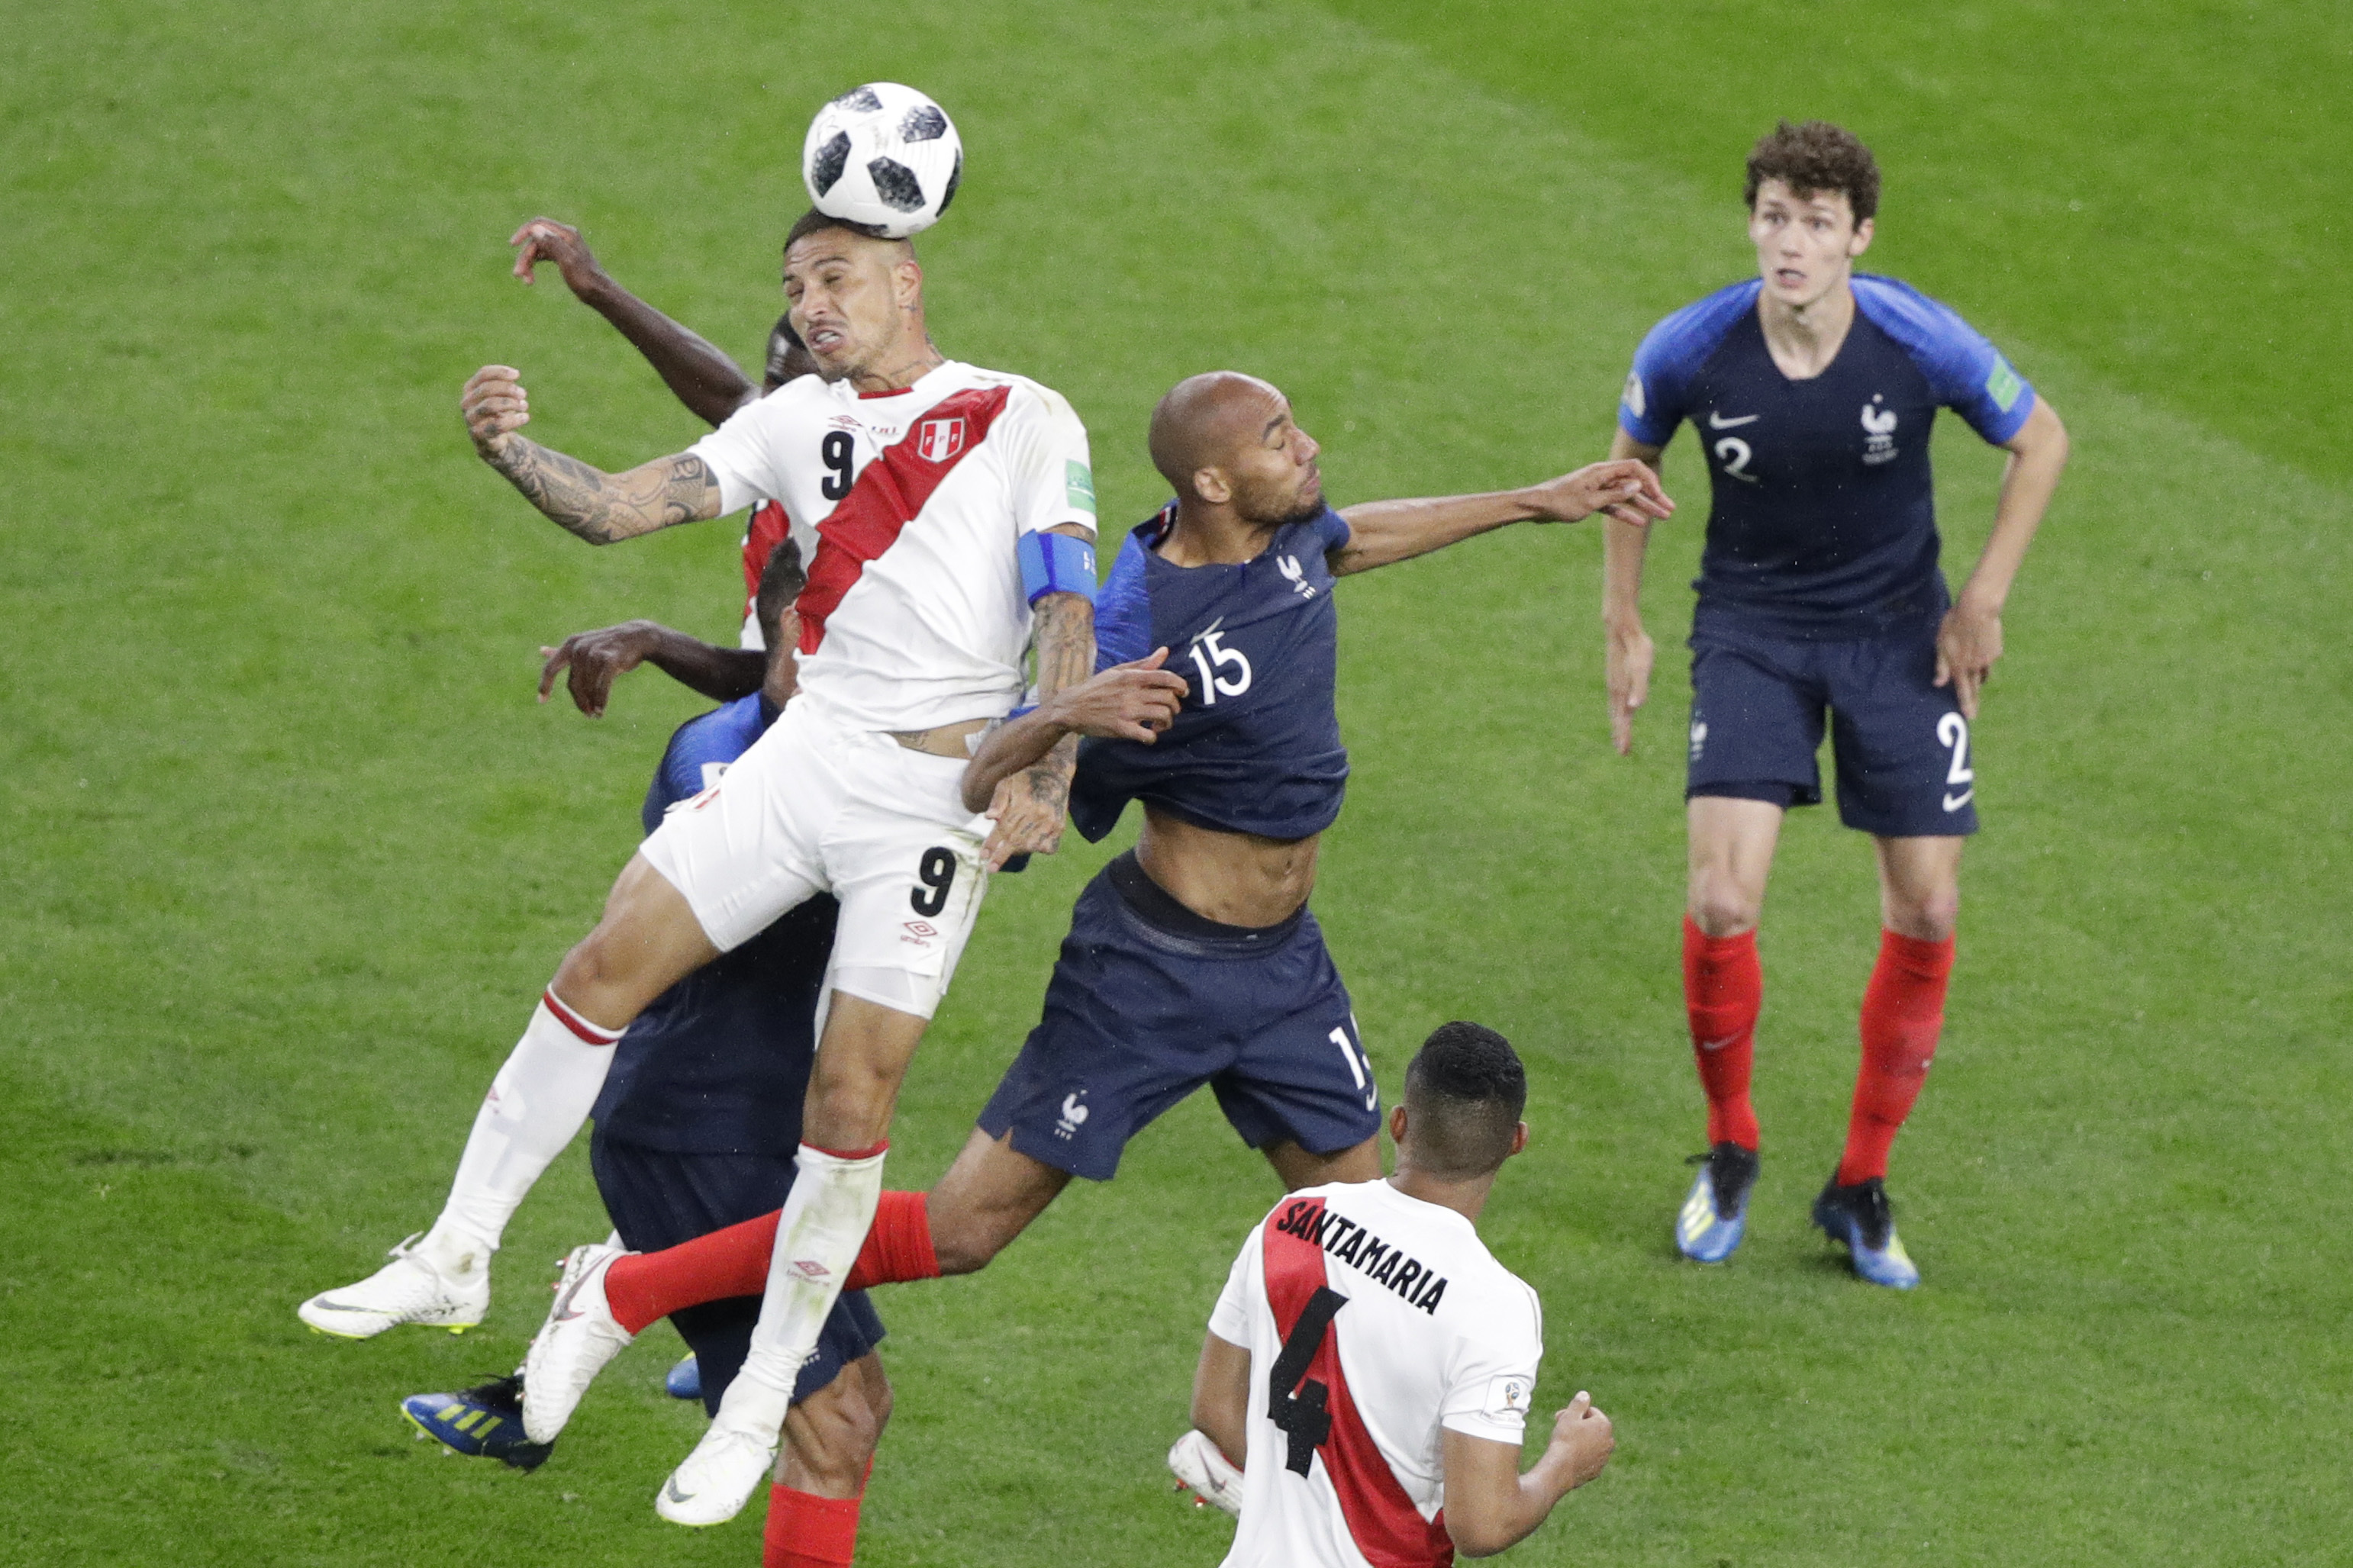 <div class='meta'><div class='origin-logo' data-origin='none'></div><span class='caption-text' data-credit='Mark Baker/AP Photo'>Peru's Paolo Guerrero, left, and France's Steven Nzonzi challenge for the ball during the group C match between France and Peru in the Yekaterinburg Arena on Thursday, June 21.</span></div>